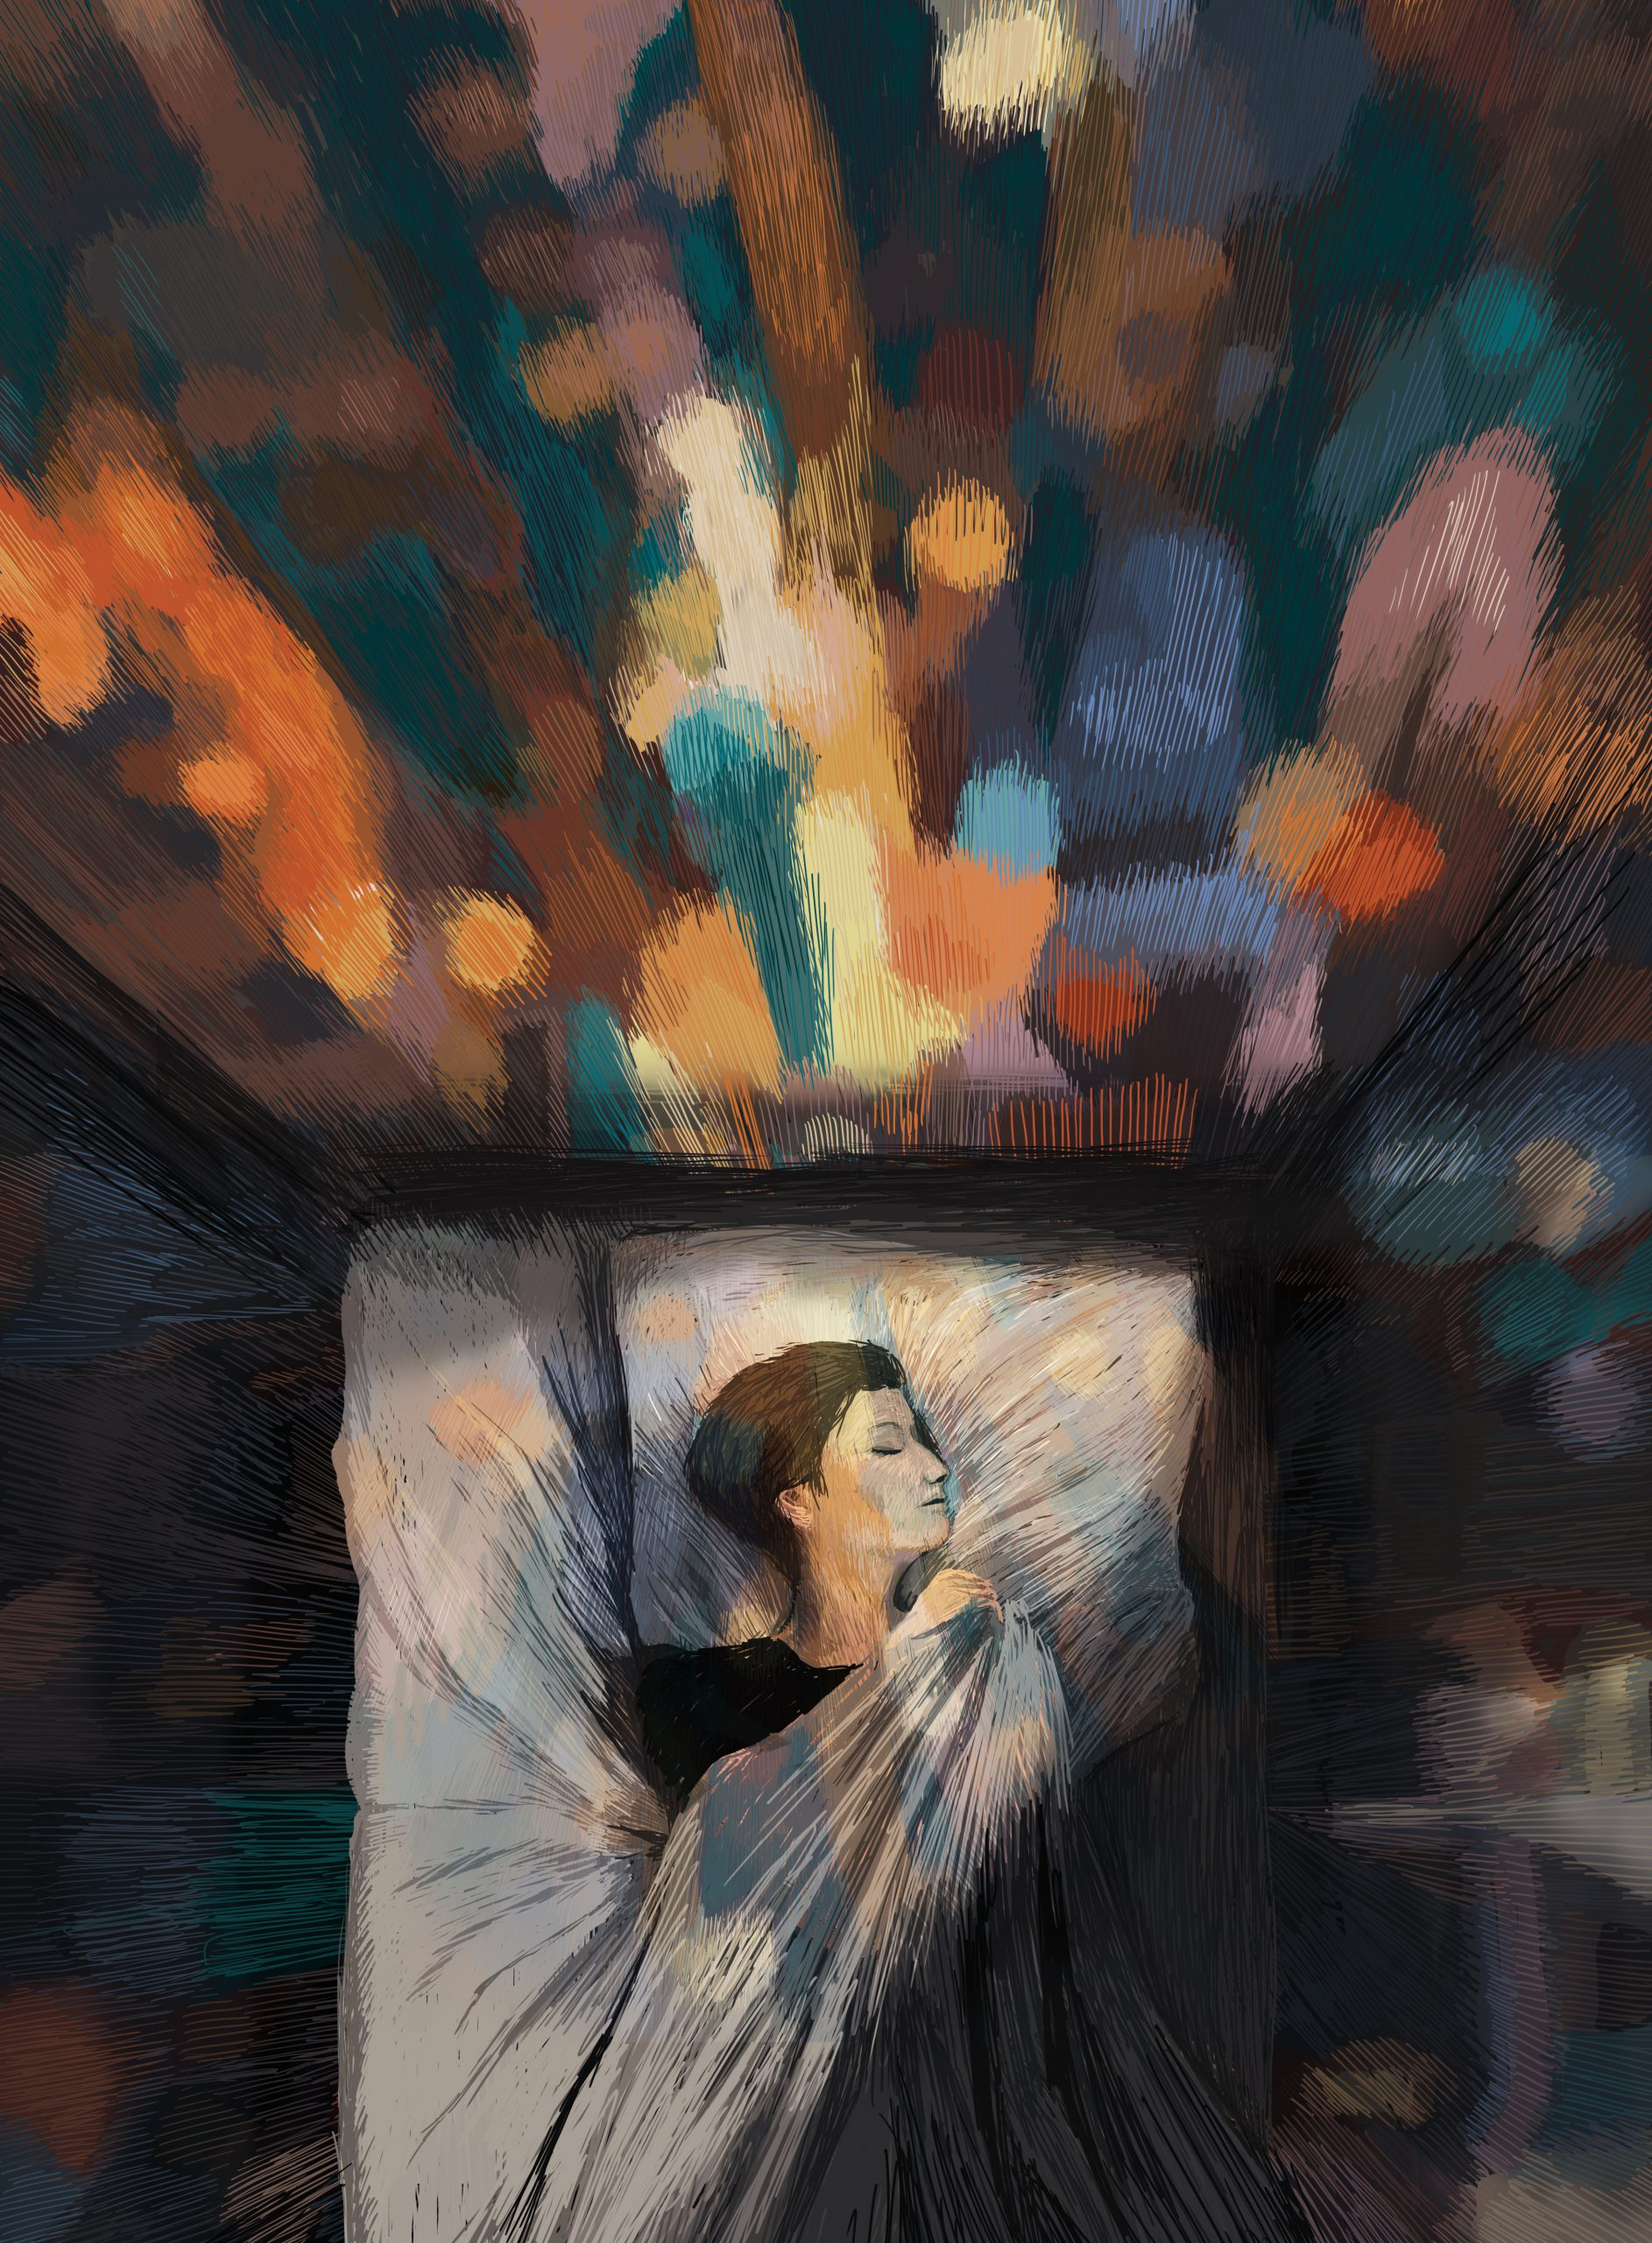 The Trick – A Poem by Imtiaz Dharker about the feeling of love and the imagination in the sleep, when the loved one is absent. The Trick – Digital Illustration. The Trick – limited Fine Art Print